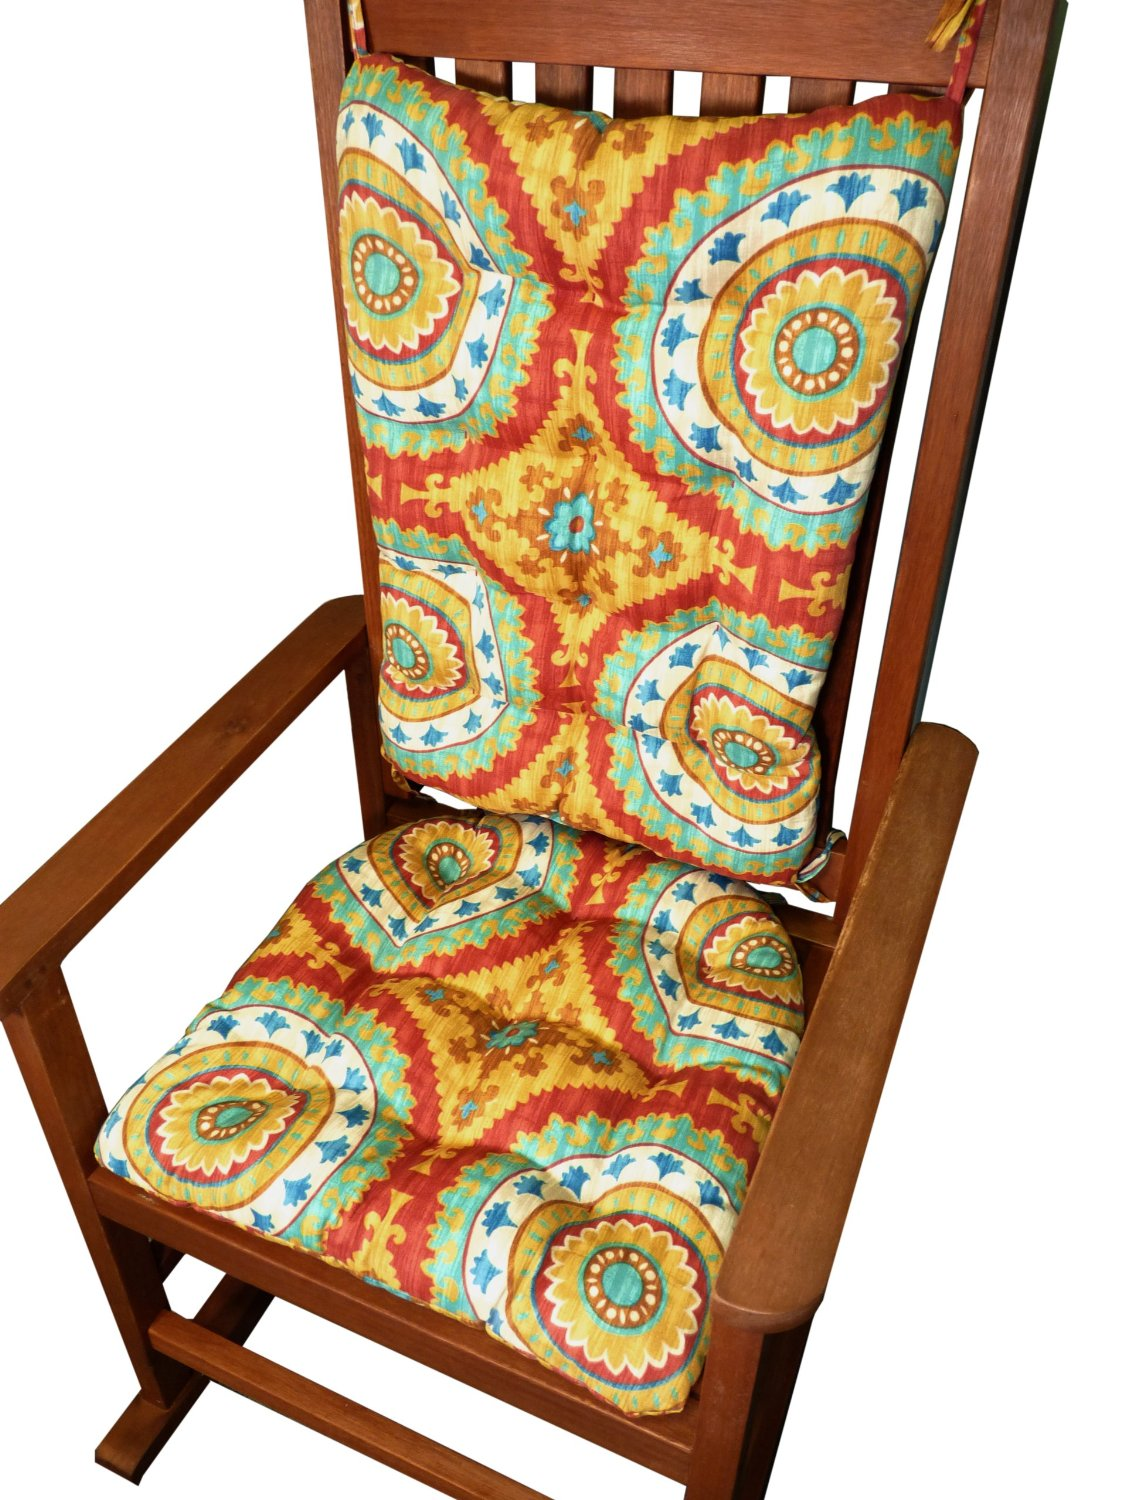 Best Outdoor Rocking Chair Cushions and Cushion Sets for 2014 - Reviews